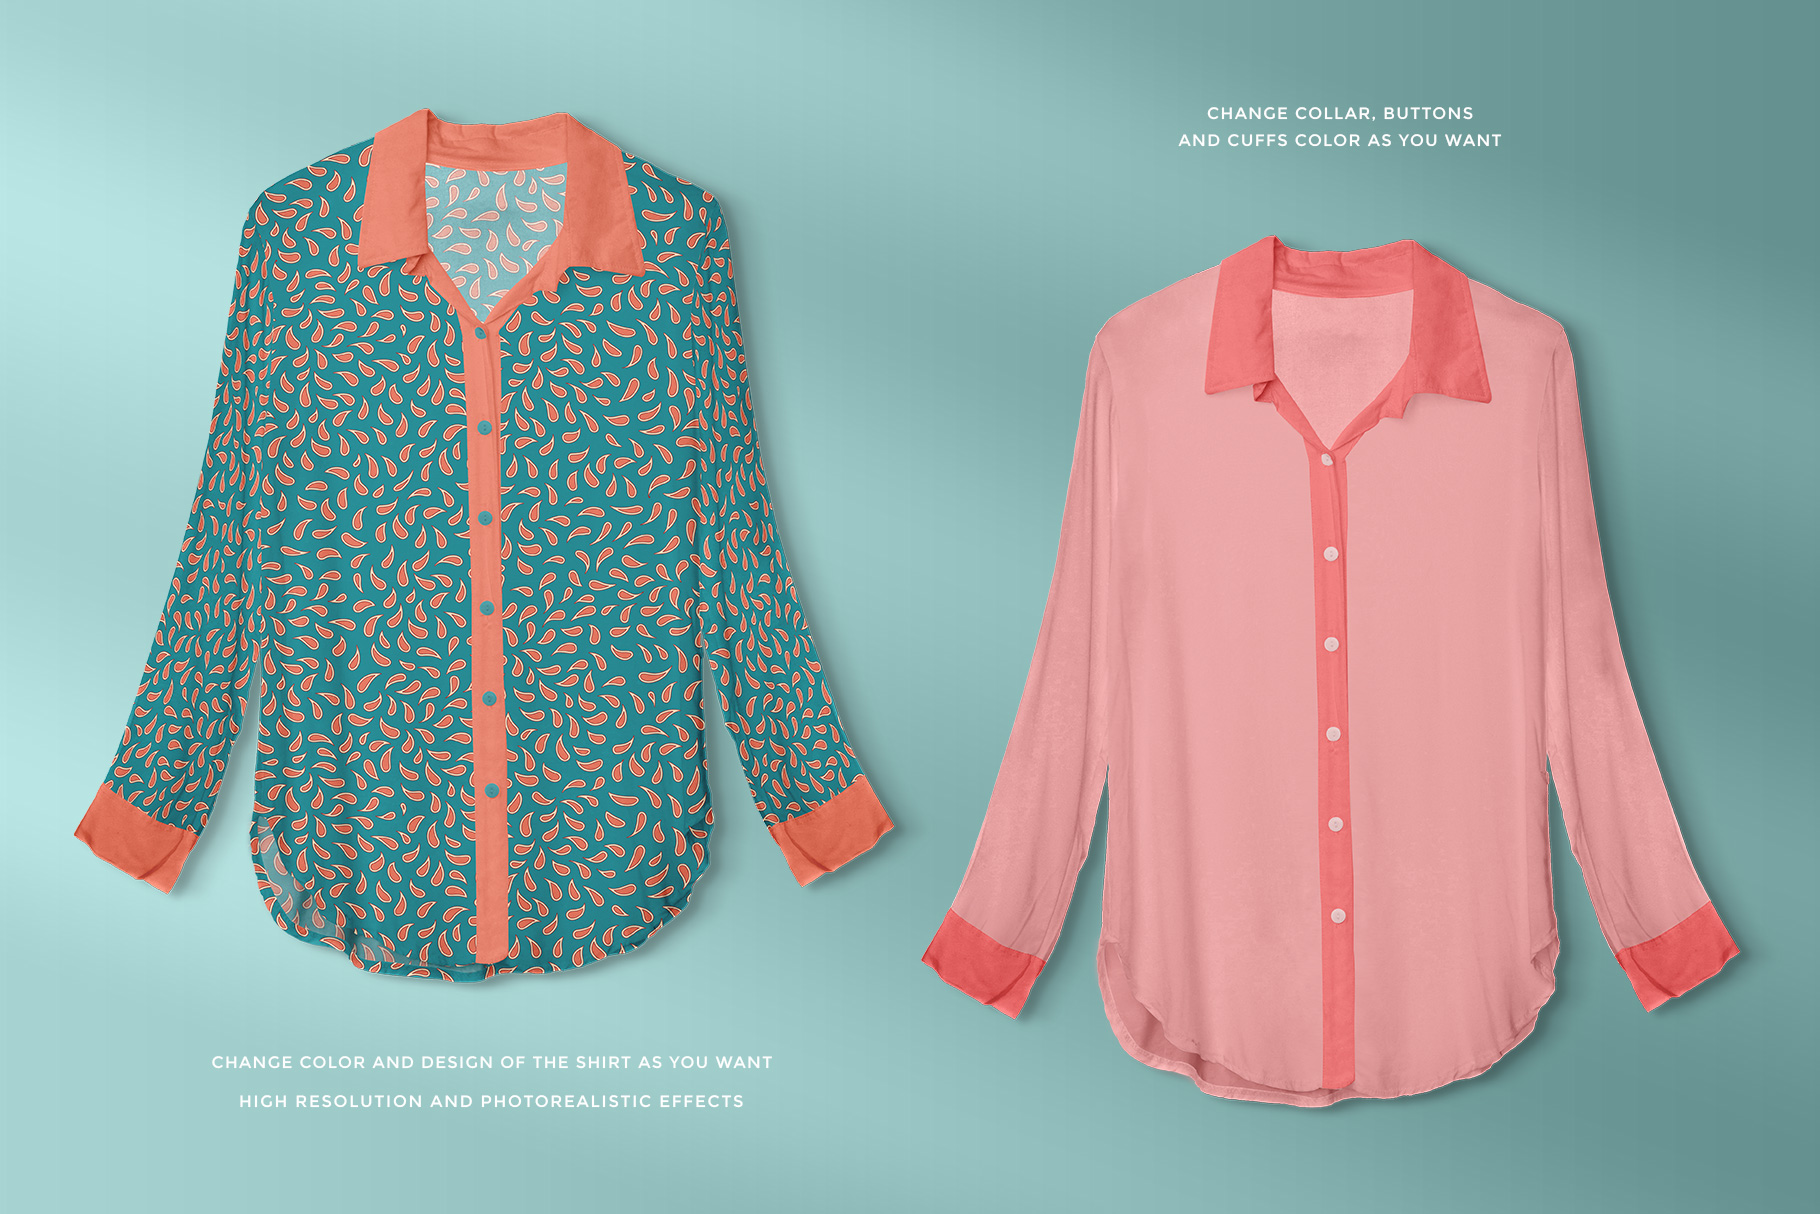 features of the female long sleeve shirt mockup